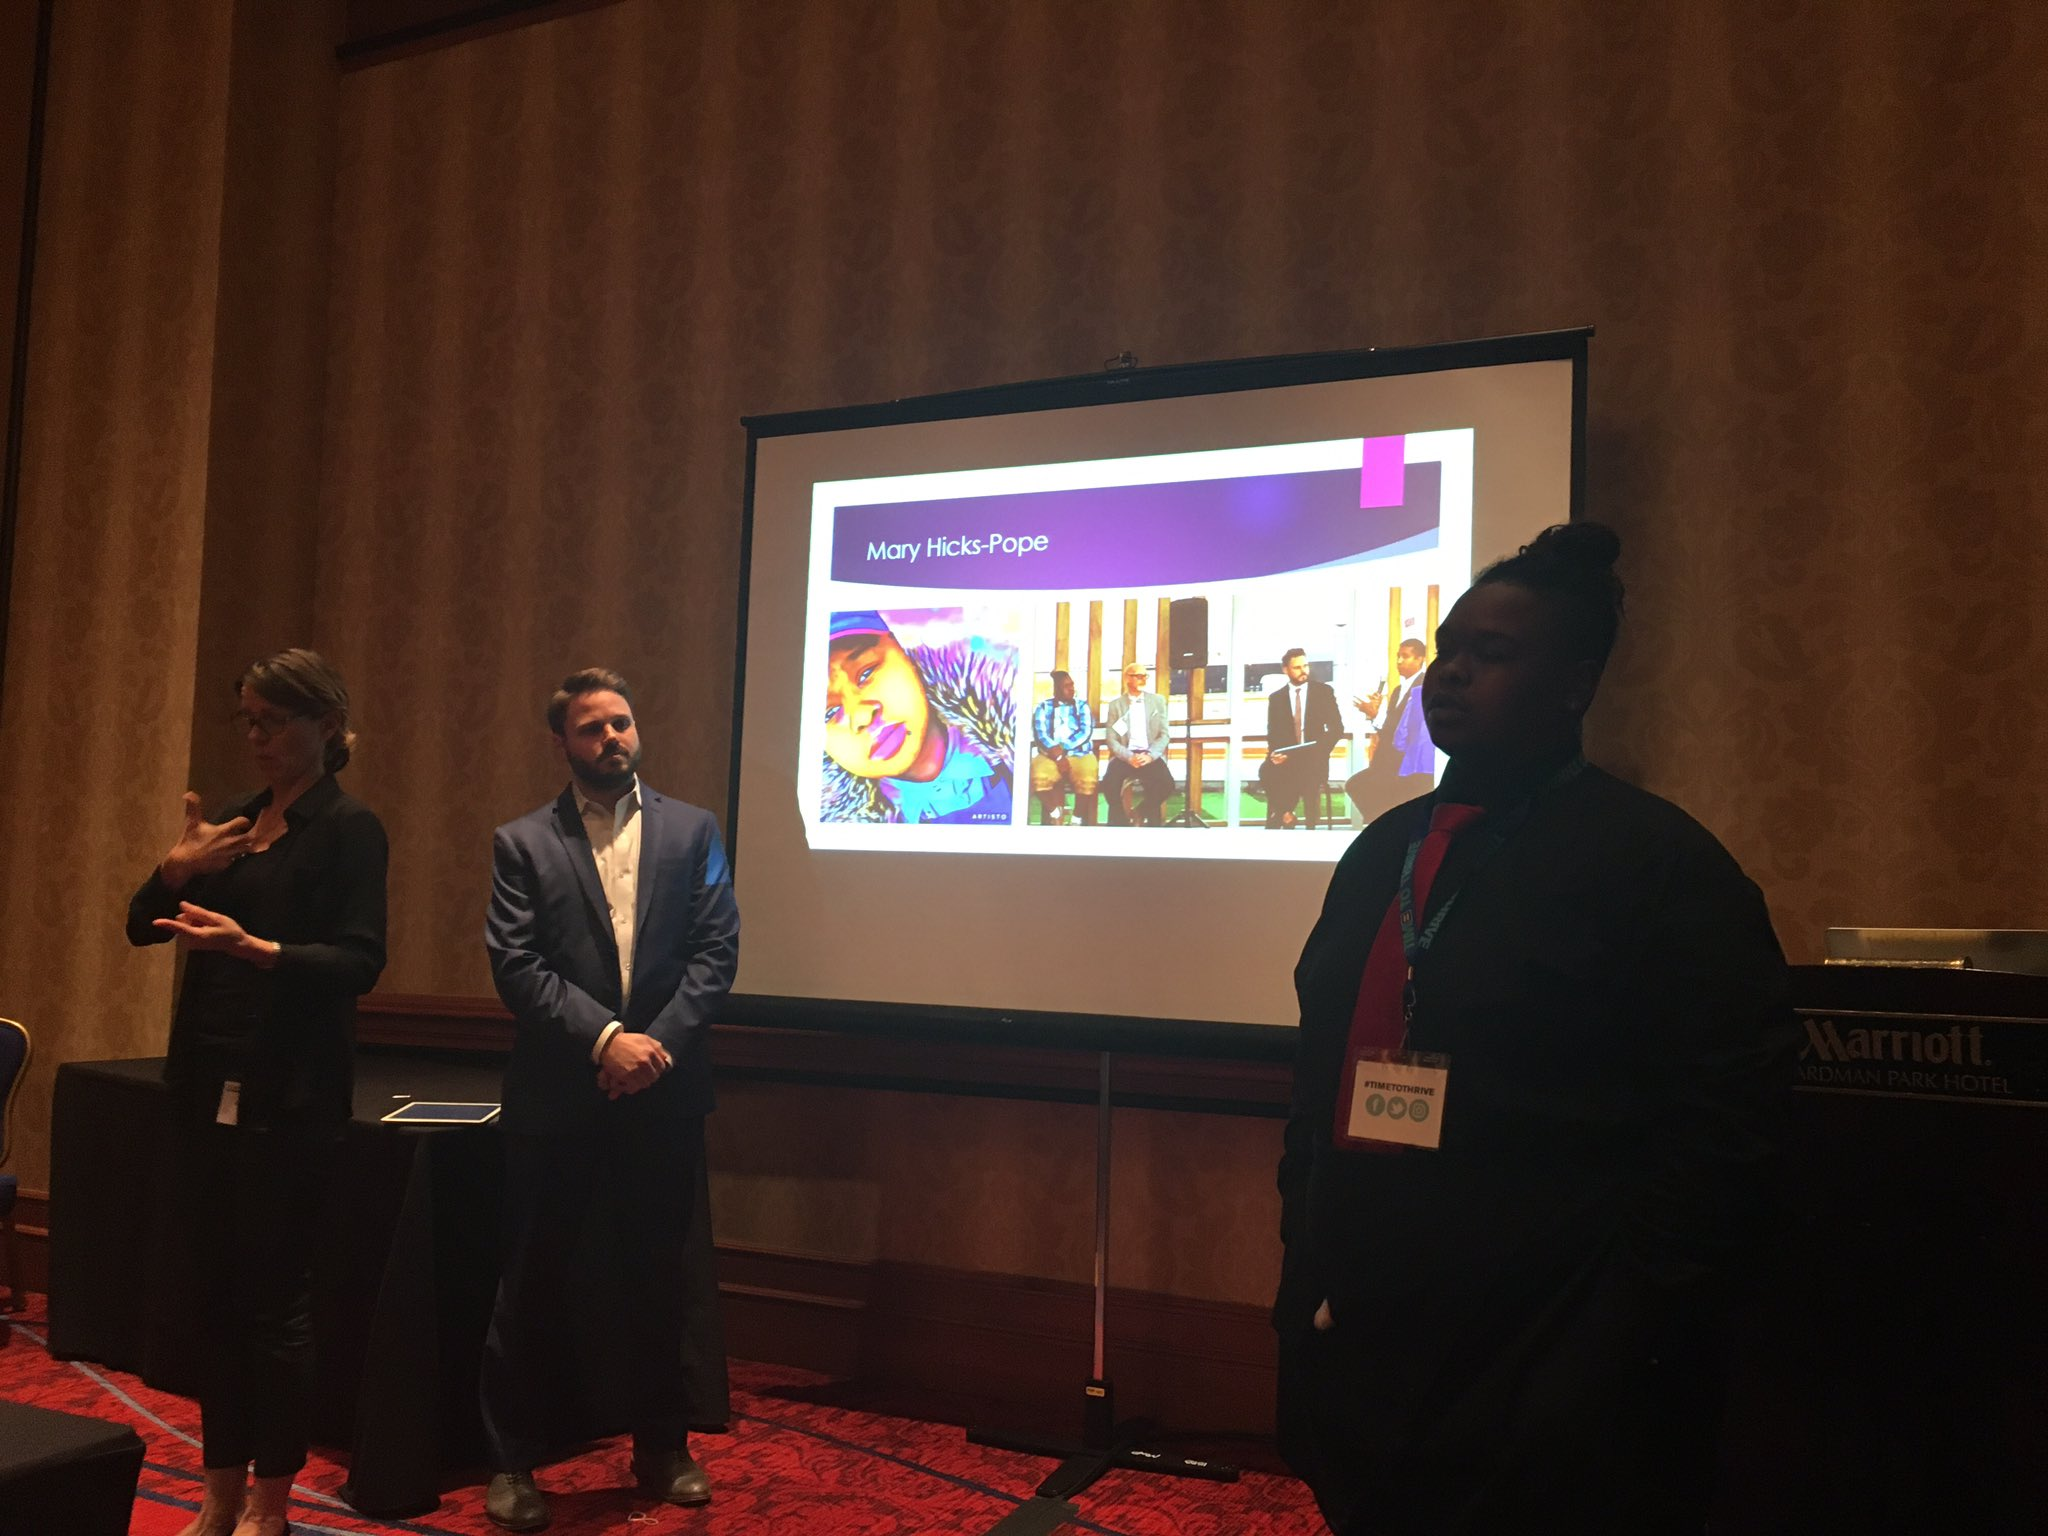 @LGBTTech @chrisbwood presenting with Mary Hicks-Pope on the importance of technology for underprivileged youth #TimeToTHRIVE https://t.co/FtKI5bbGec